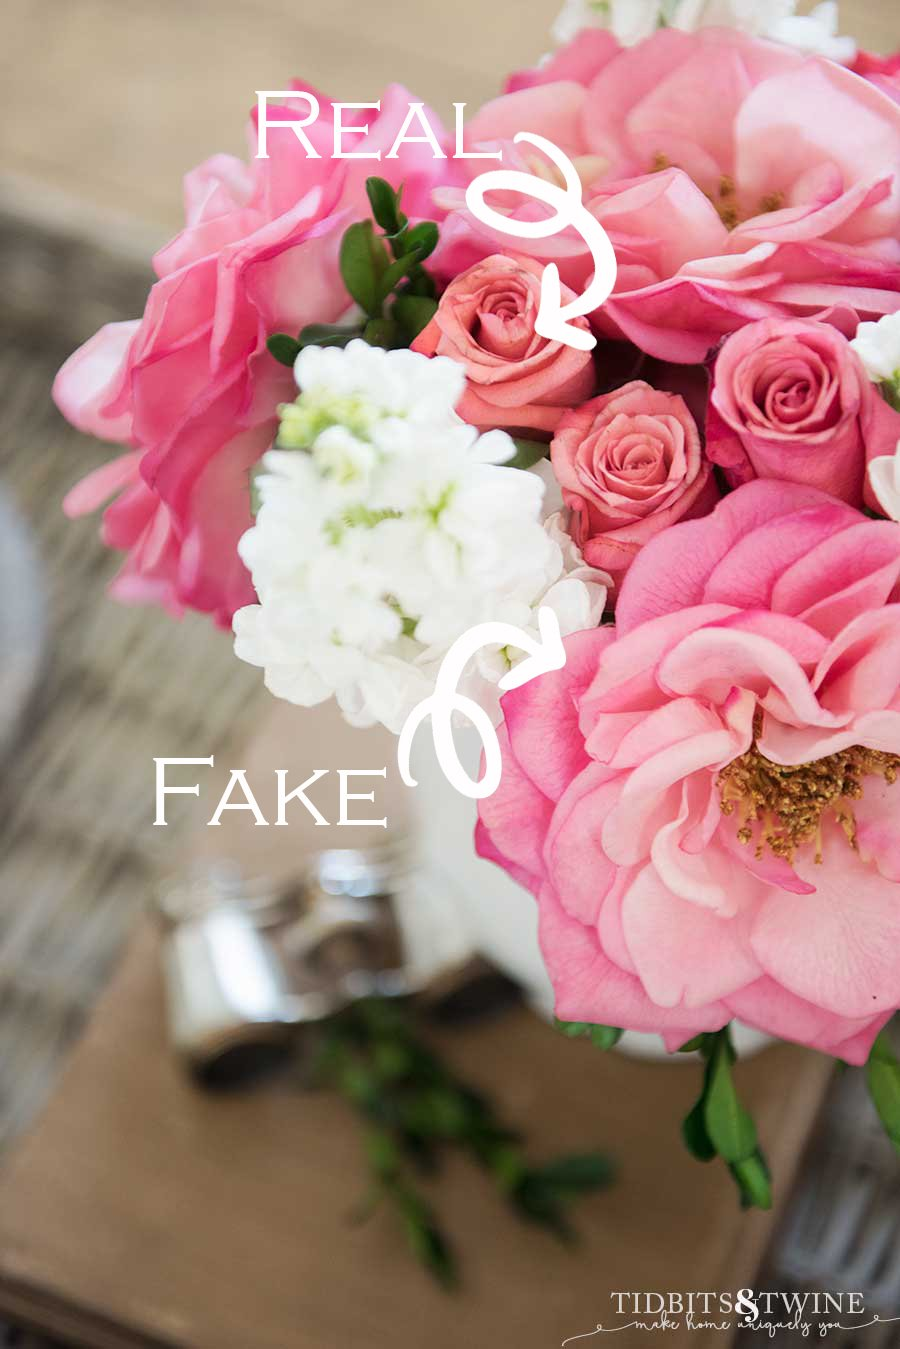 bouquet of pink rose buds and pink fake flowers with white stock and boxwood with opera glasses in the background